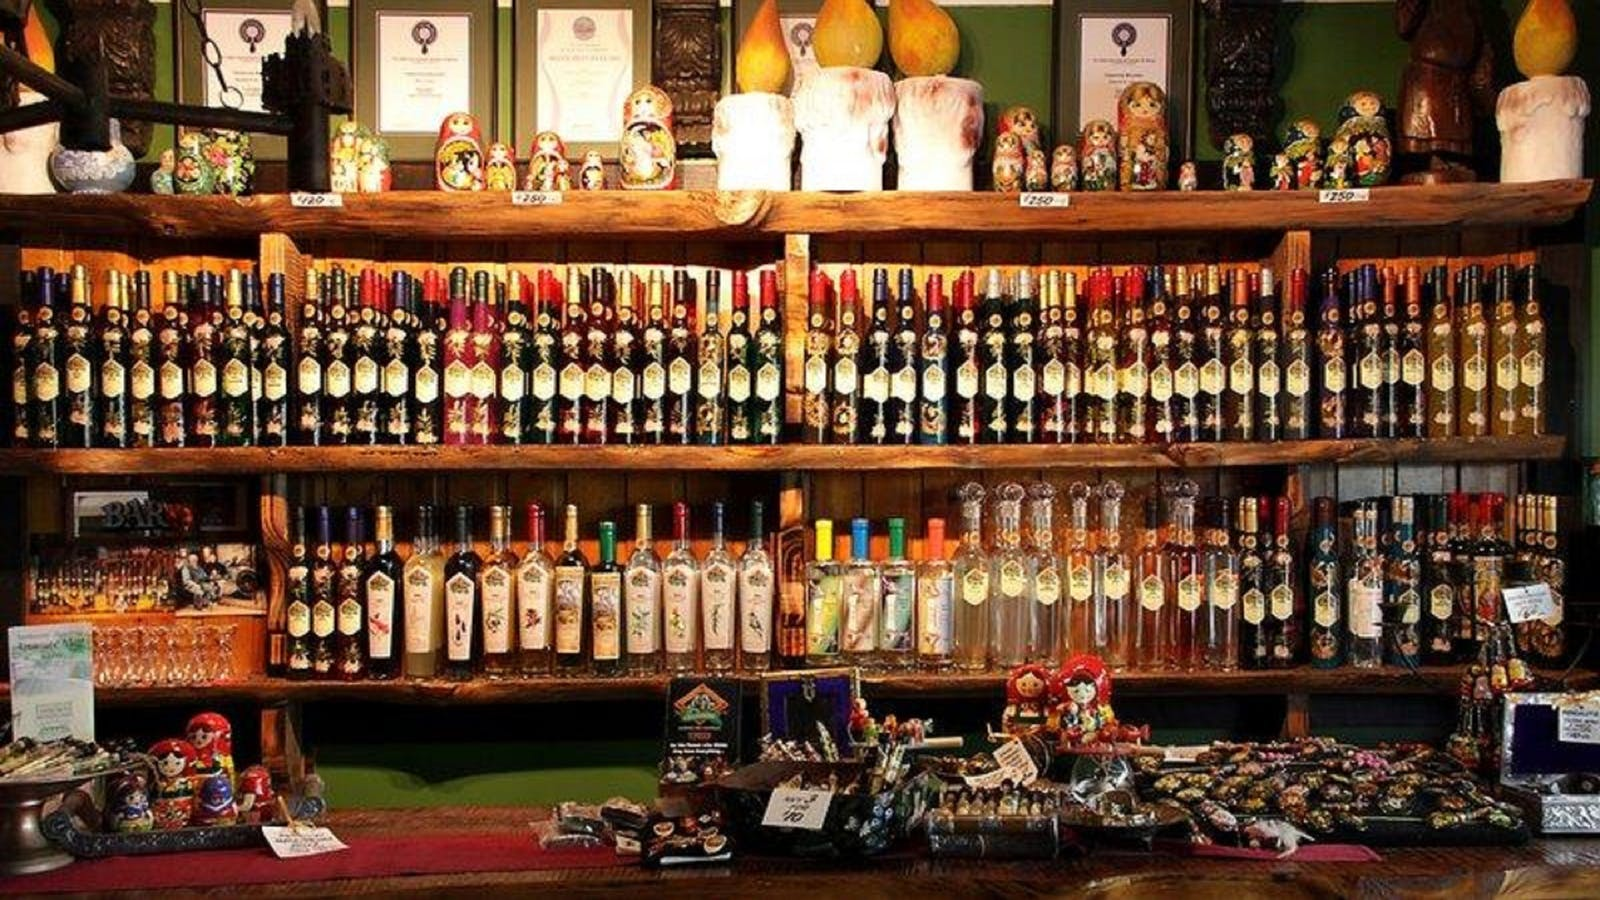 Their range of over 80 liqueurs and handcrafted gifts in their tasting room